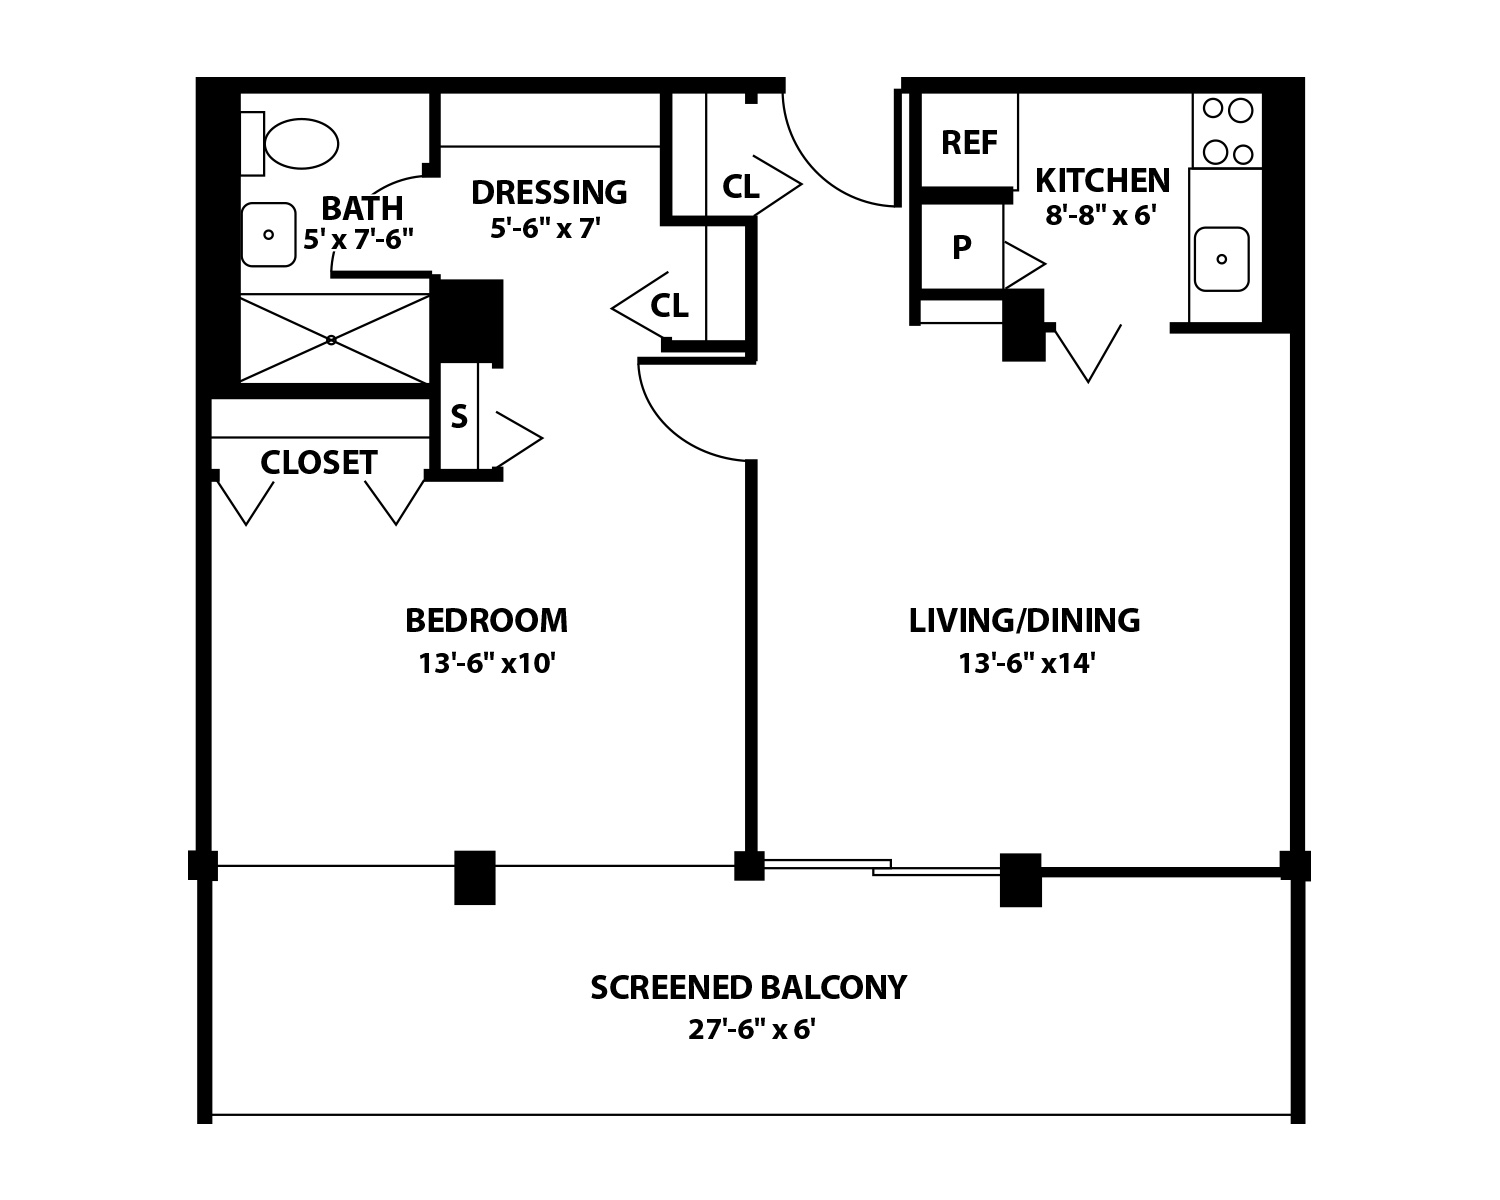 Mease Life Floor Plan